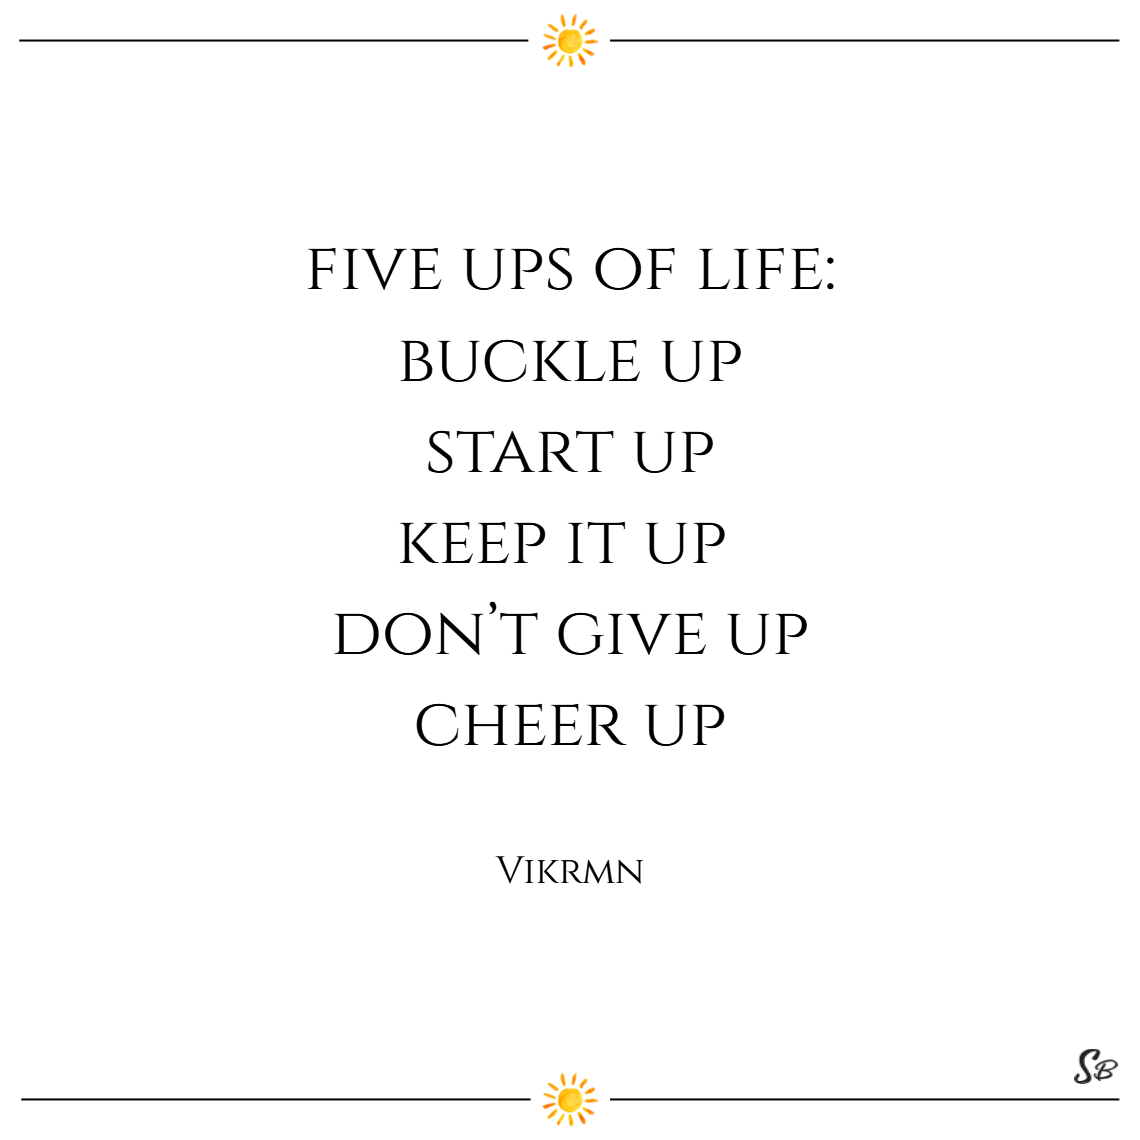 Five ups of life buckle up, start up, keep it up, don't give up, cheer up. – vikrmn cheer up quotes